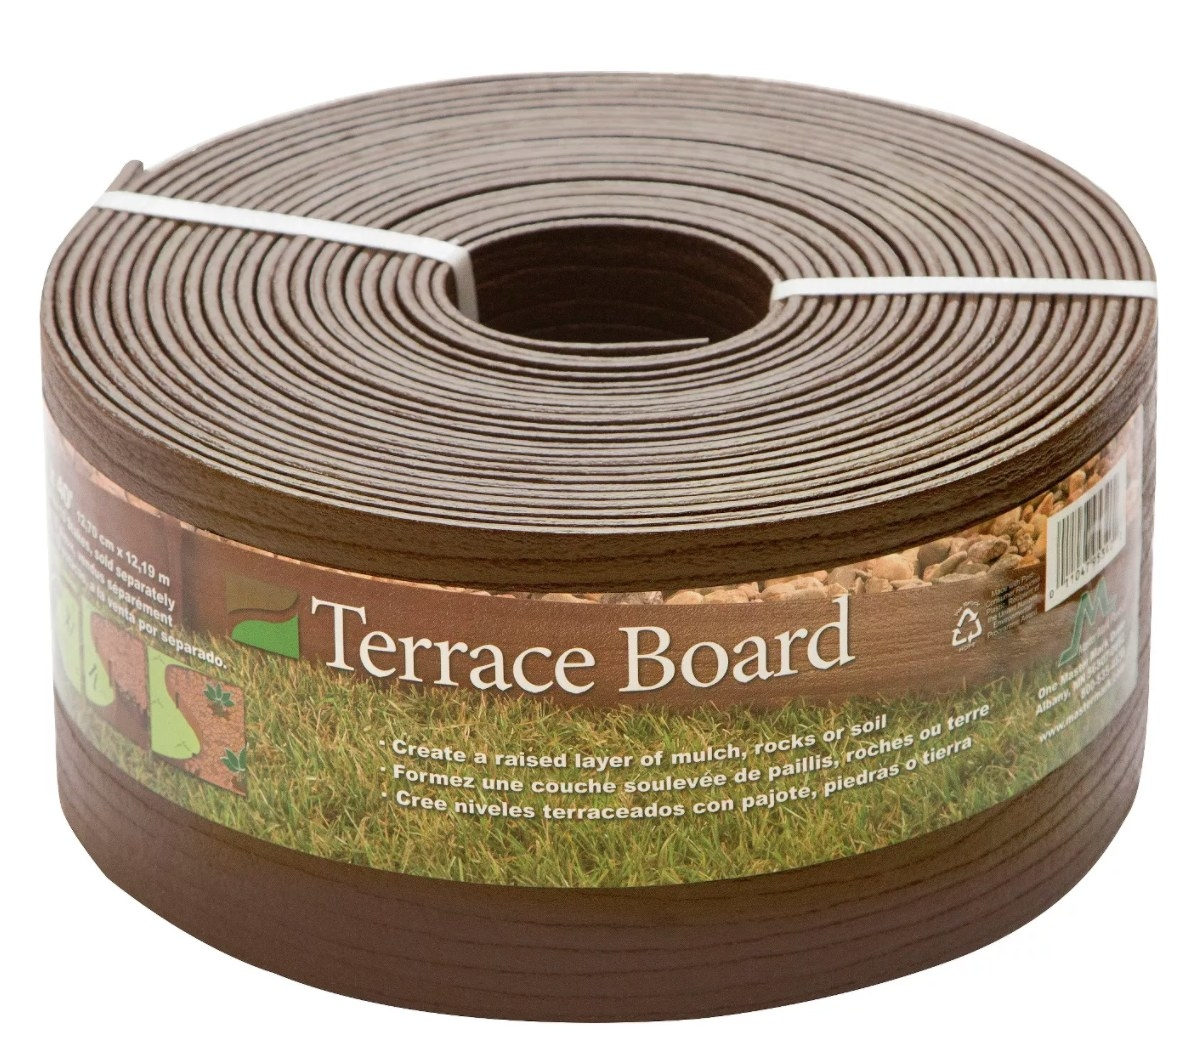 A roll of brown terrace board